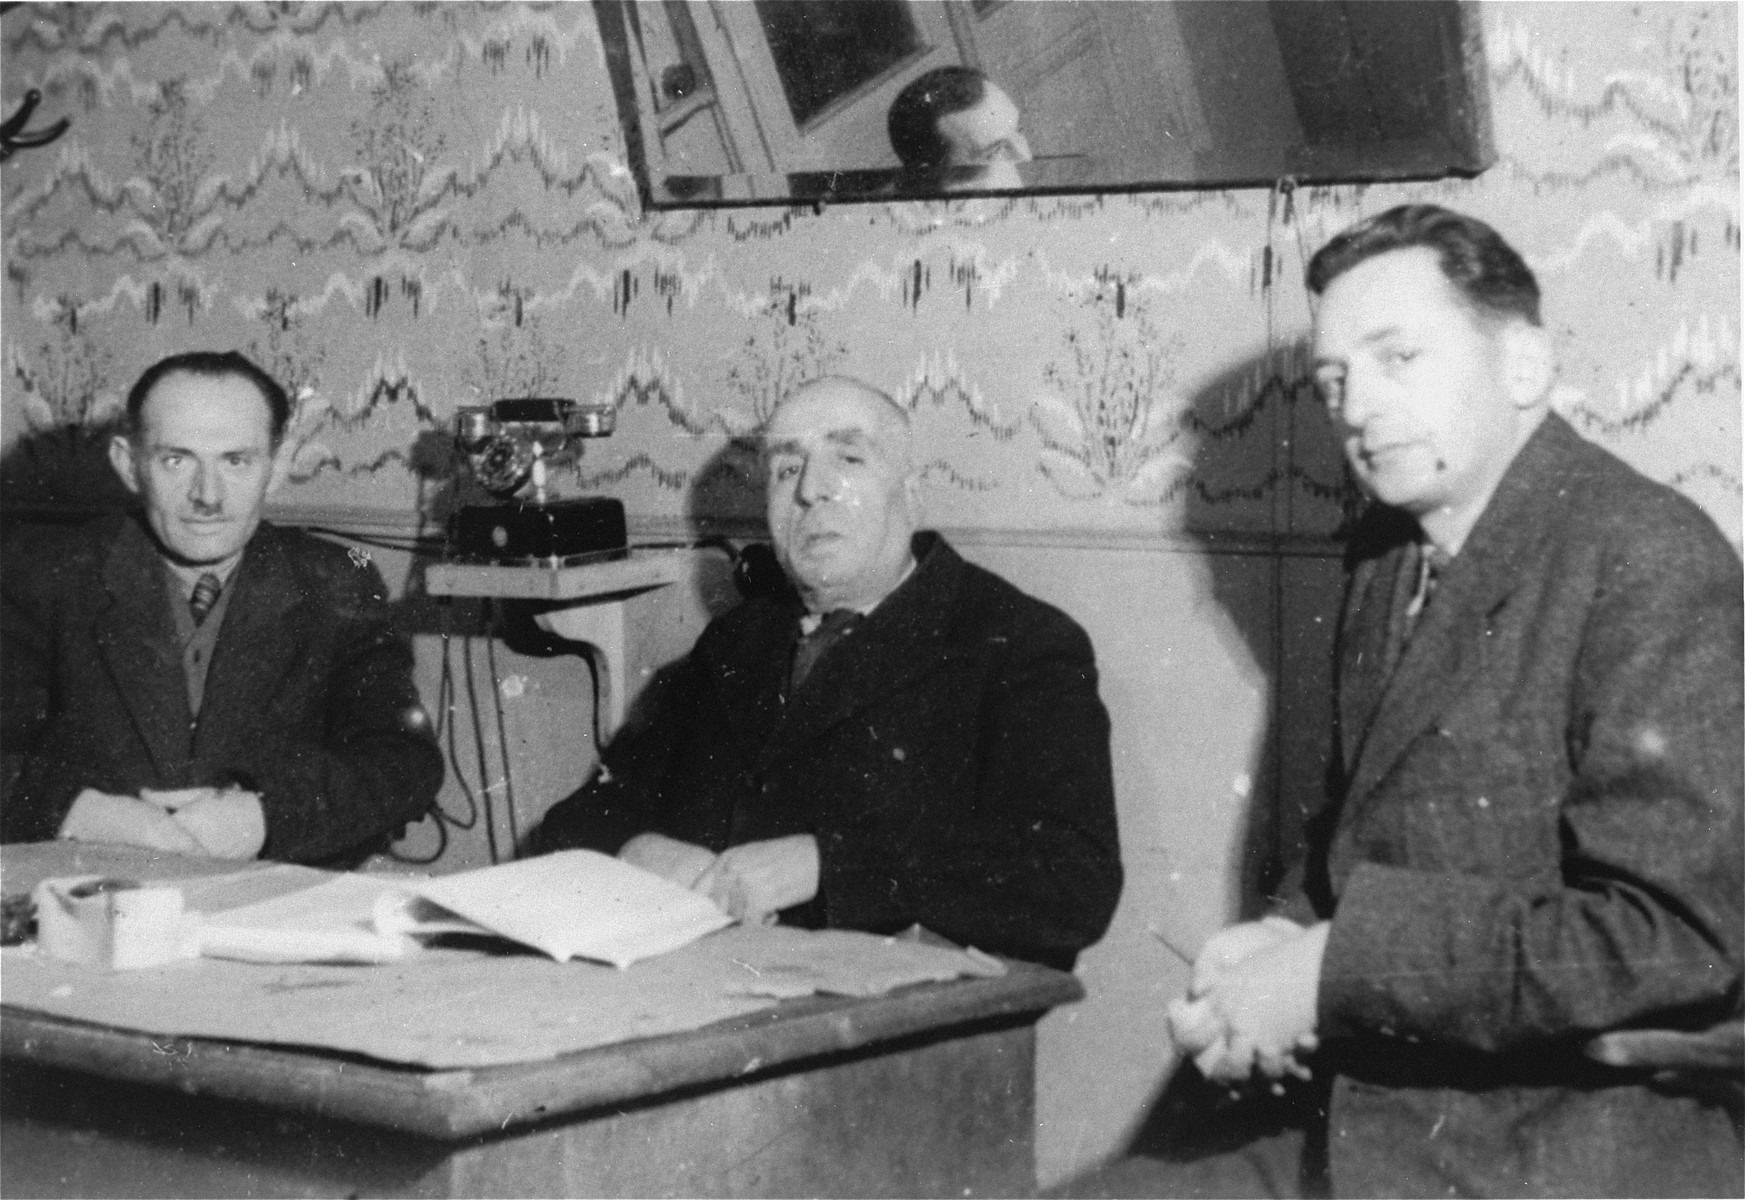 Three members of the ghetto administration sits around a table in the office of the Judenrat in the Kielce ghetto.  This photo was one the images included in an official album prepared by the Judenrat of the Kielce ghetto in 1942.